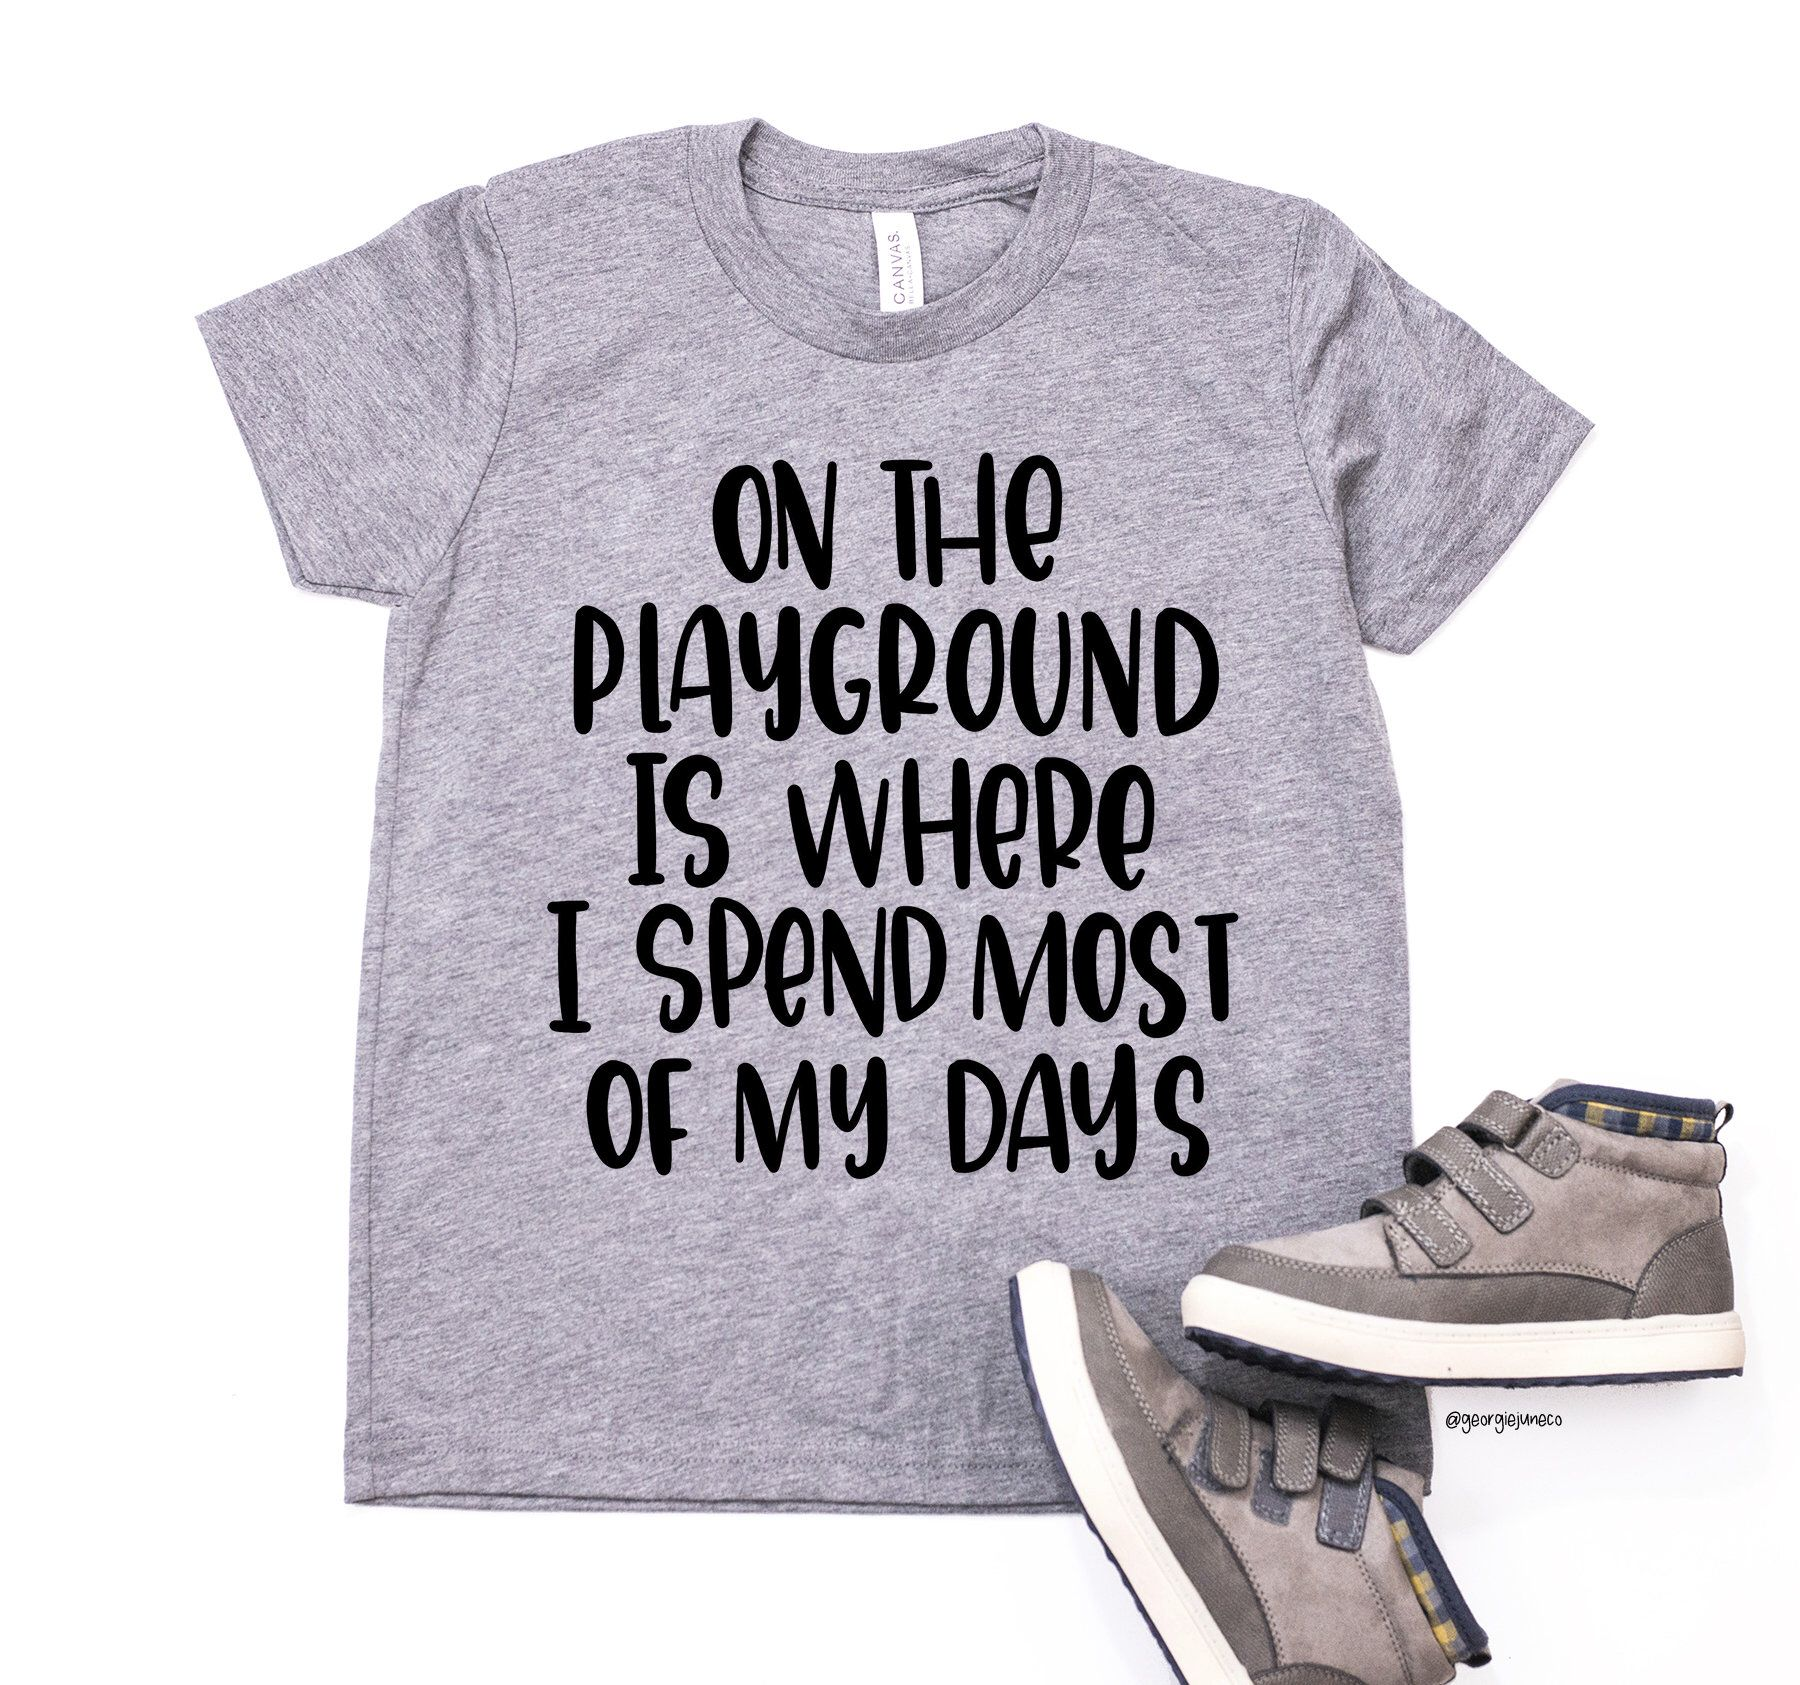 342b6e9ff On The Playground Tee | Fresh Prince Kids Tee | Toddler T-Shirts With  Sayings | Trendy Toddler Clothes | Funny Kids Shirts | Toddler Gifts